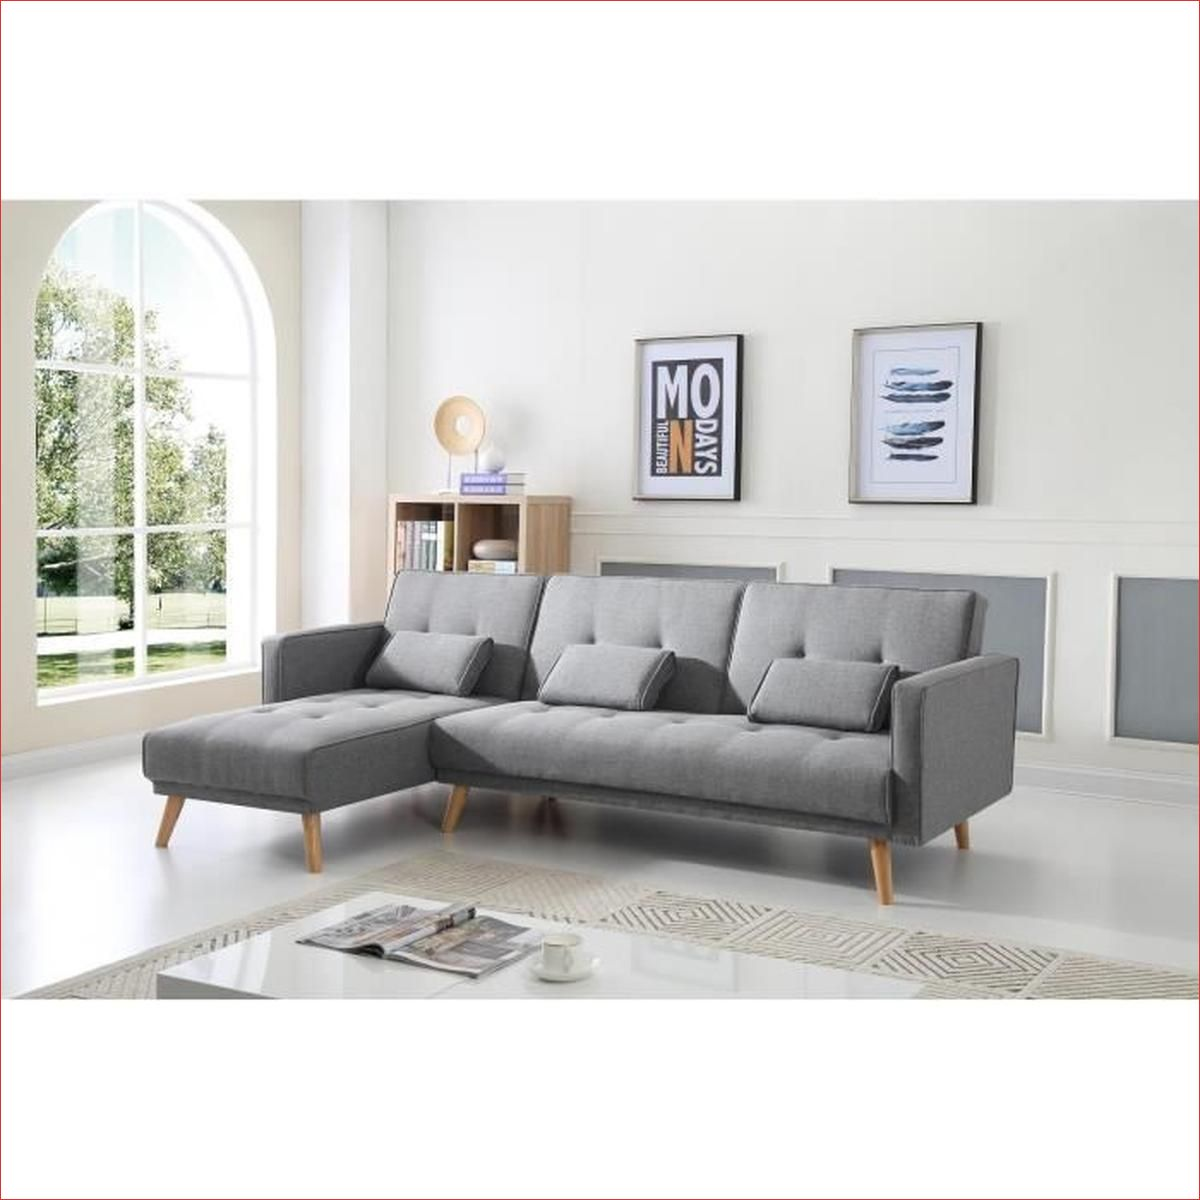 14 Genial Aspen Canape D Angle Reversible Convertible 4 Places Gallery Di 2020